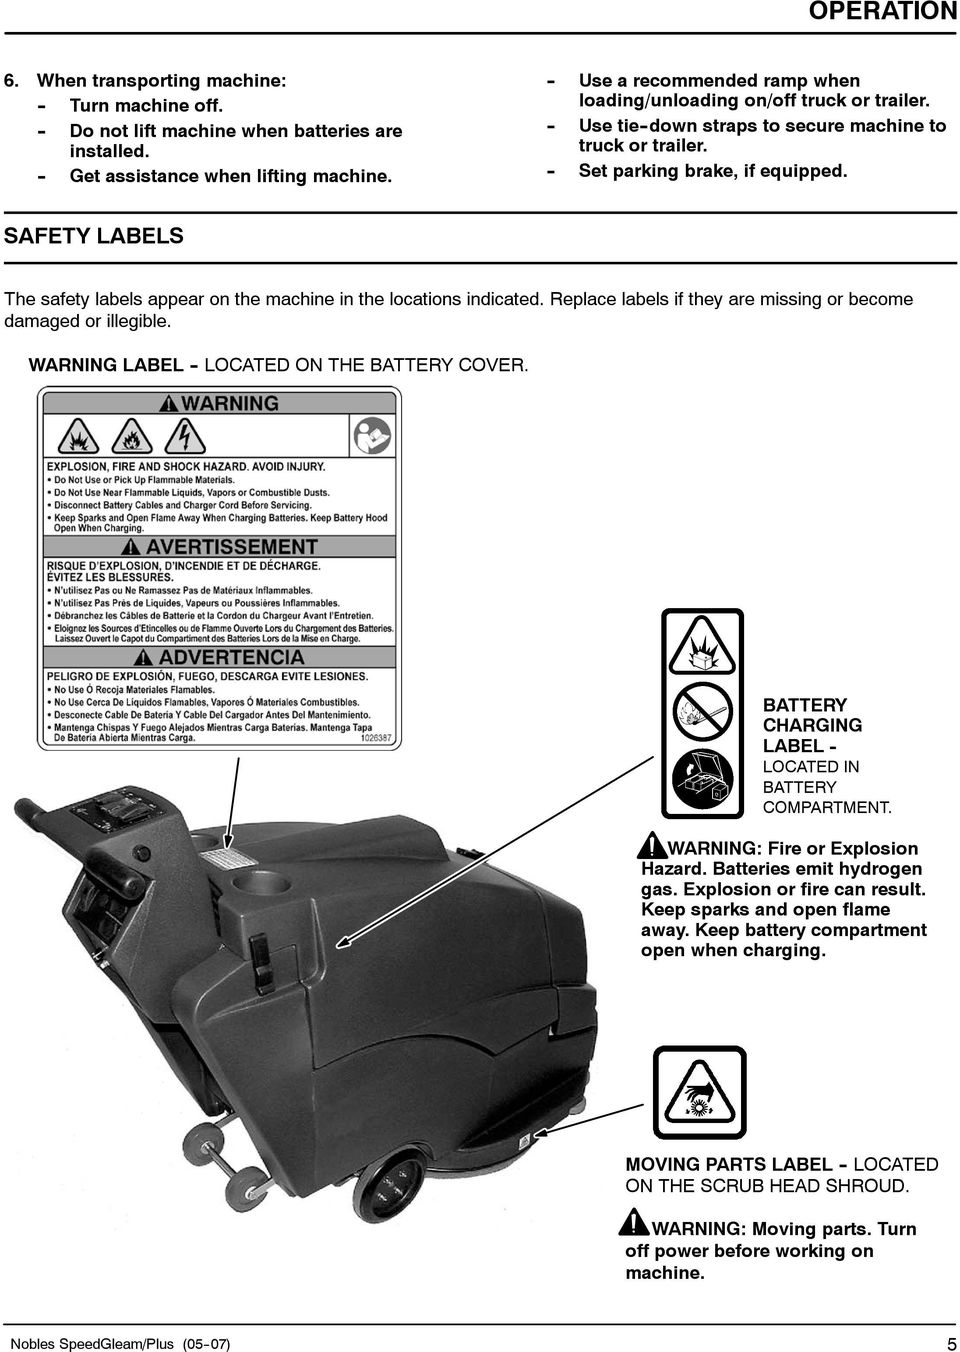 SAFETY LABELS The safety labels appear on the machine in the locations indicated. Replace labels if they are missing or become damaged or illegible. WARNING LABEL - LOCATED ON THE BATTERY COVER.